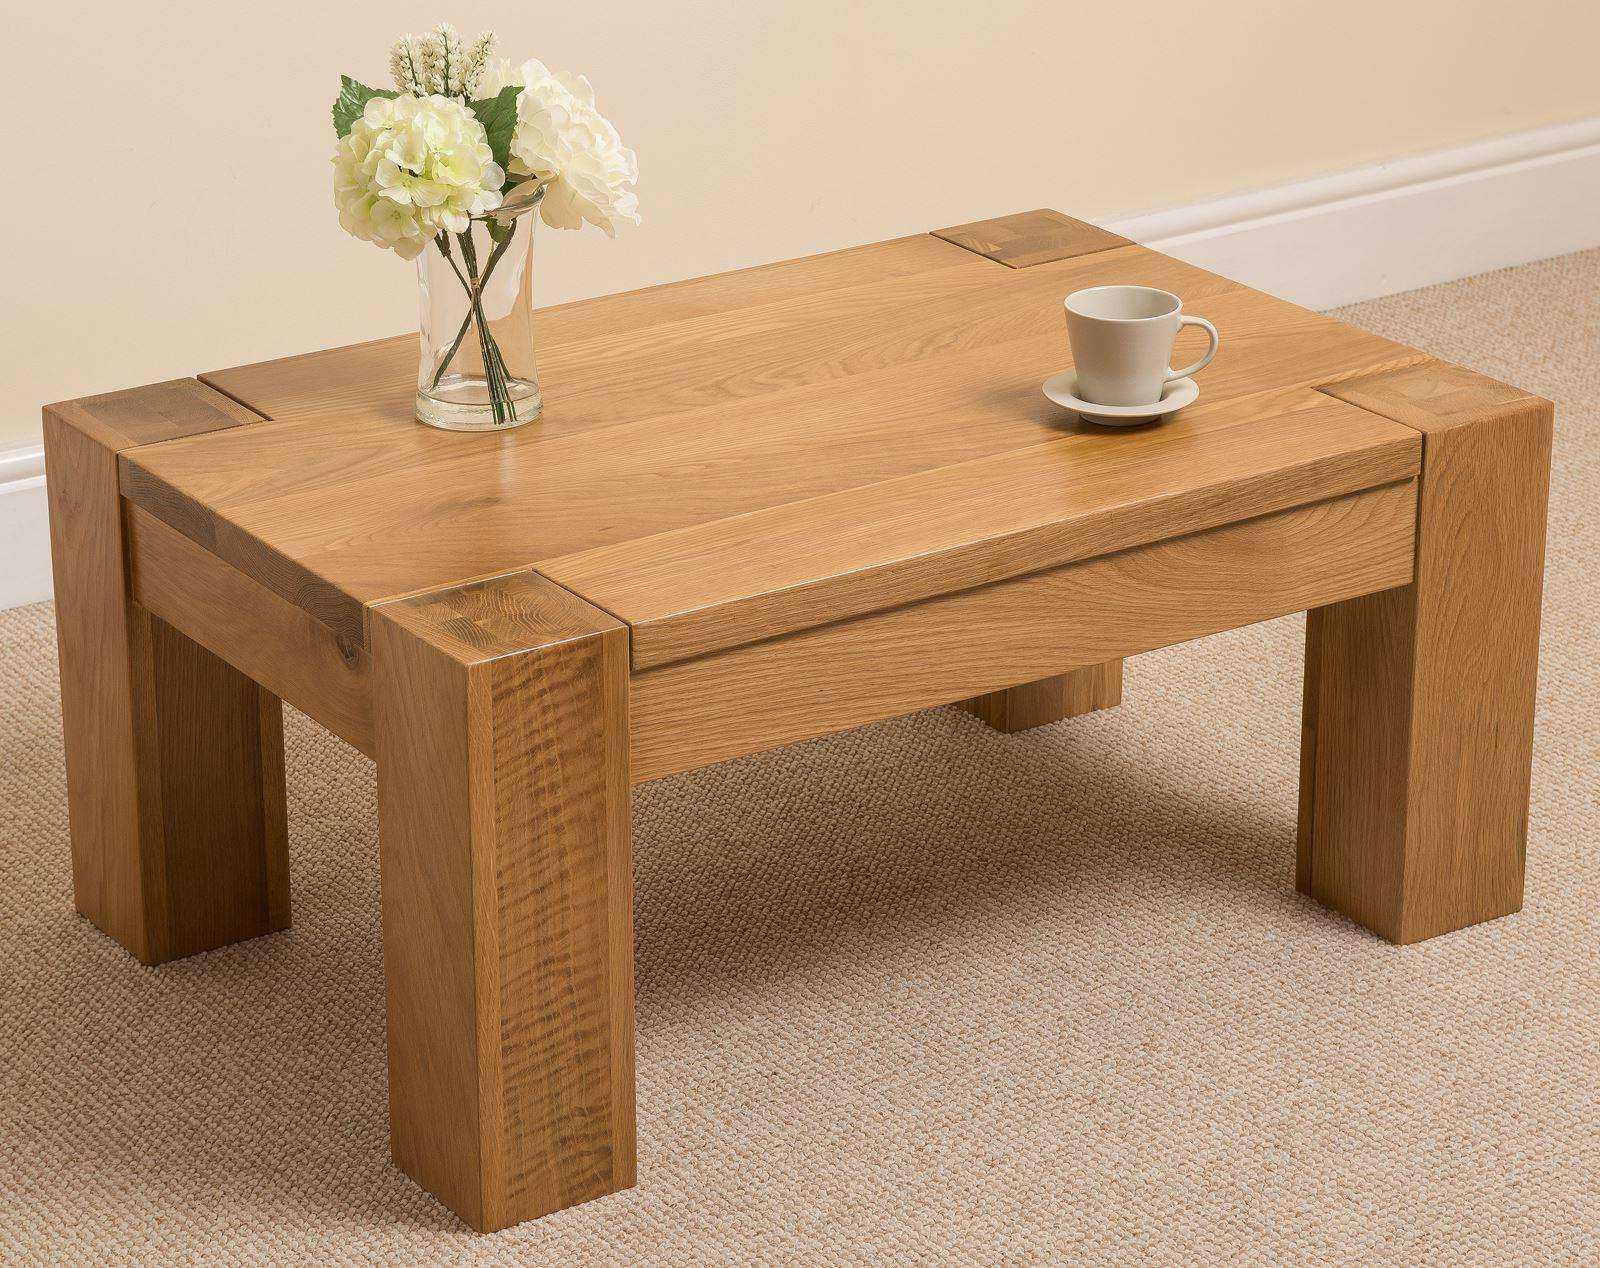 Favorite Square Oak Coffee Tables In Coffee Table : Wonderful Side Table Square Oak Coffee Table Oval (View 7 of 20)